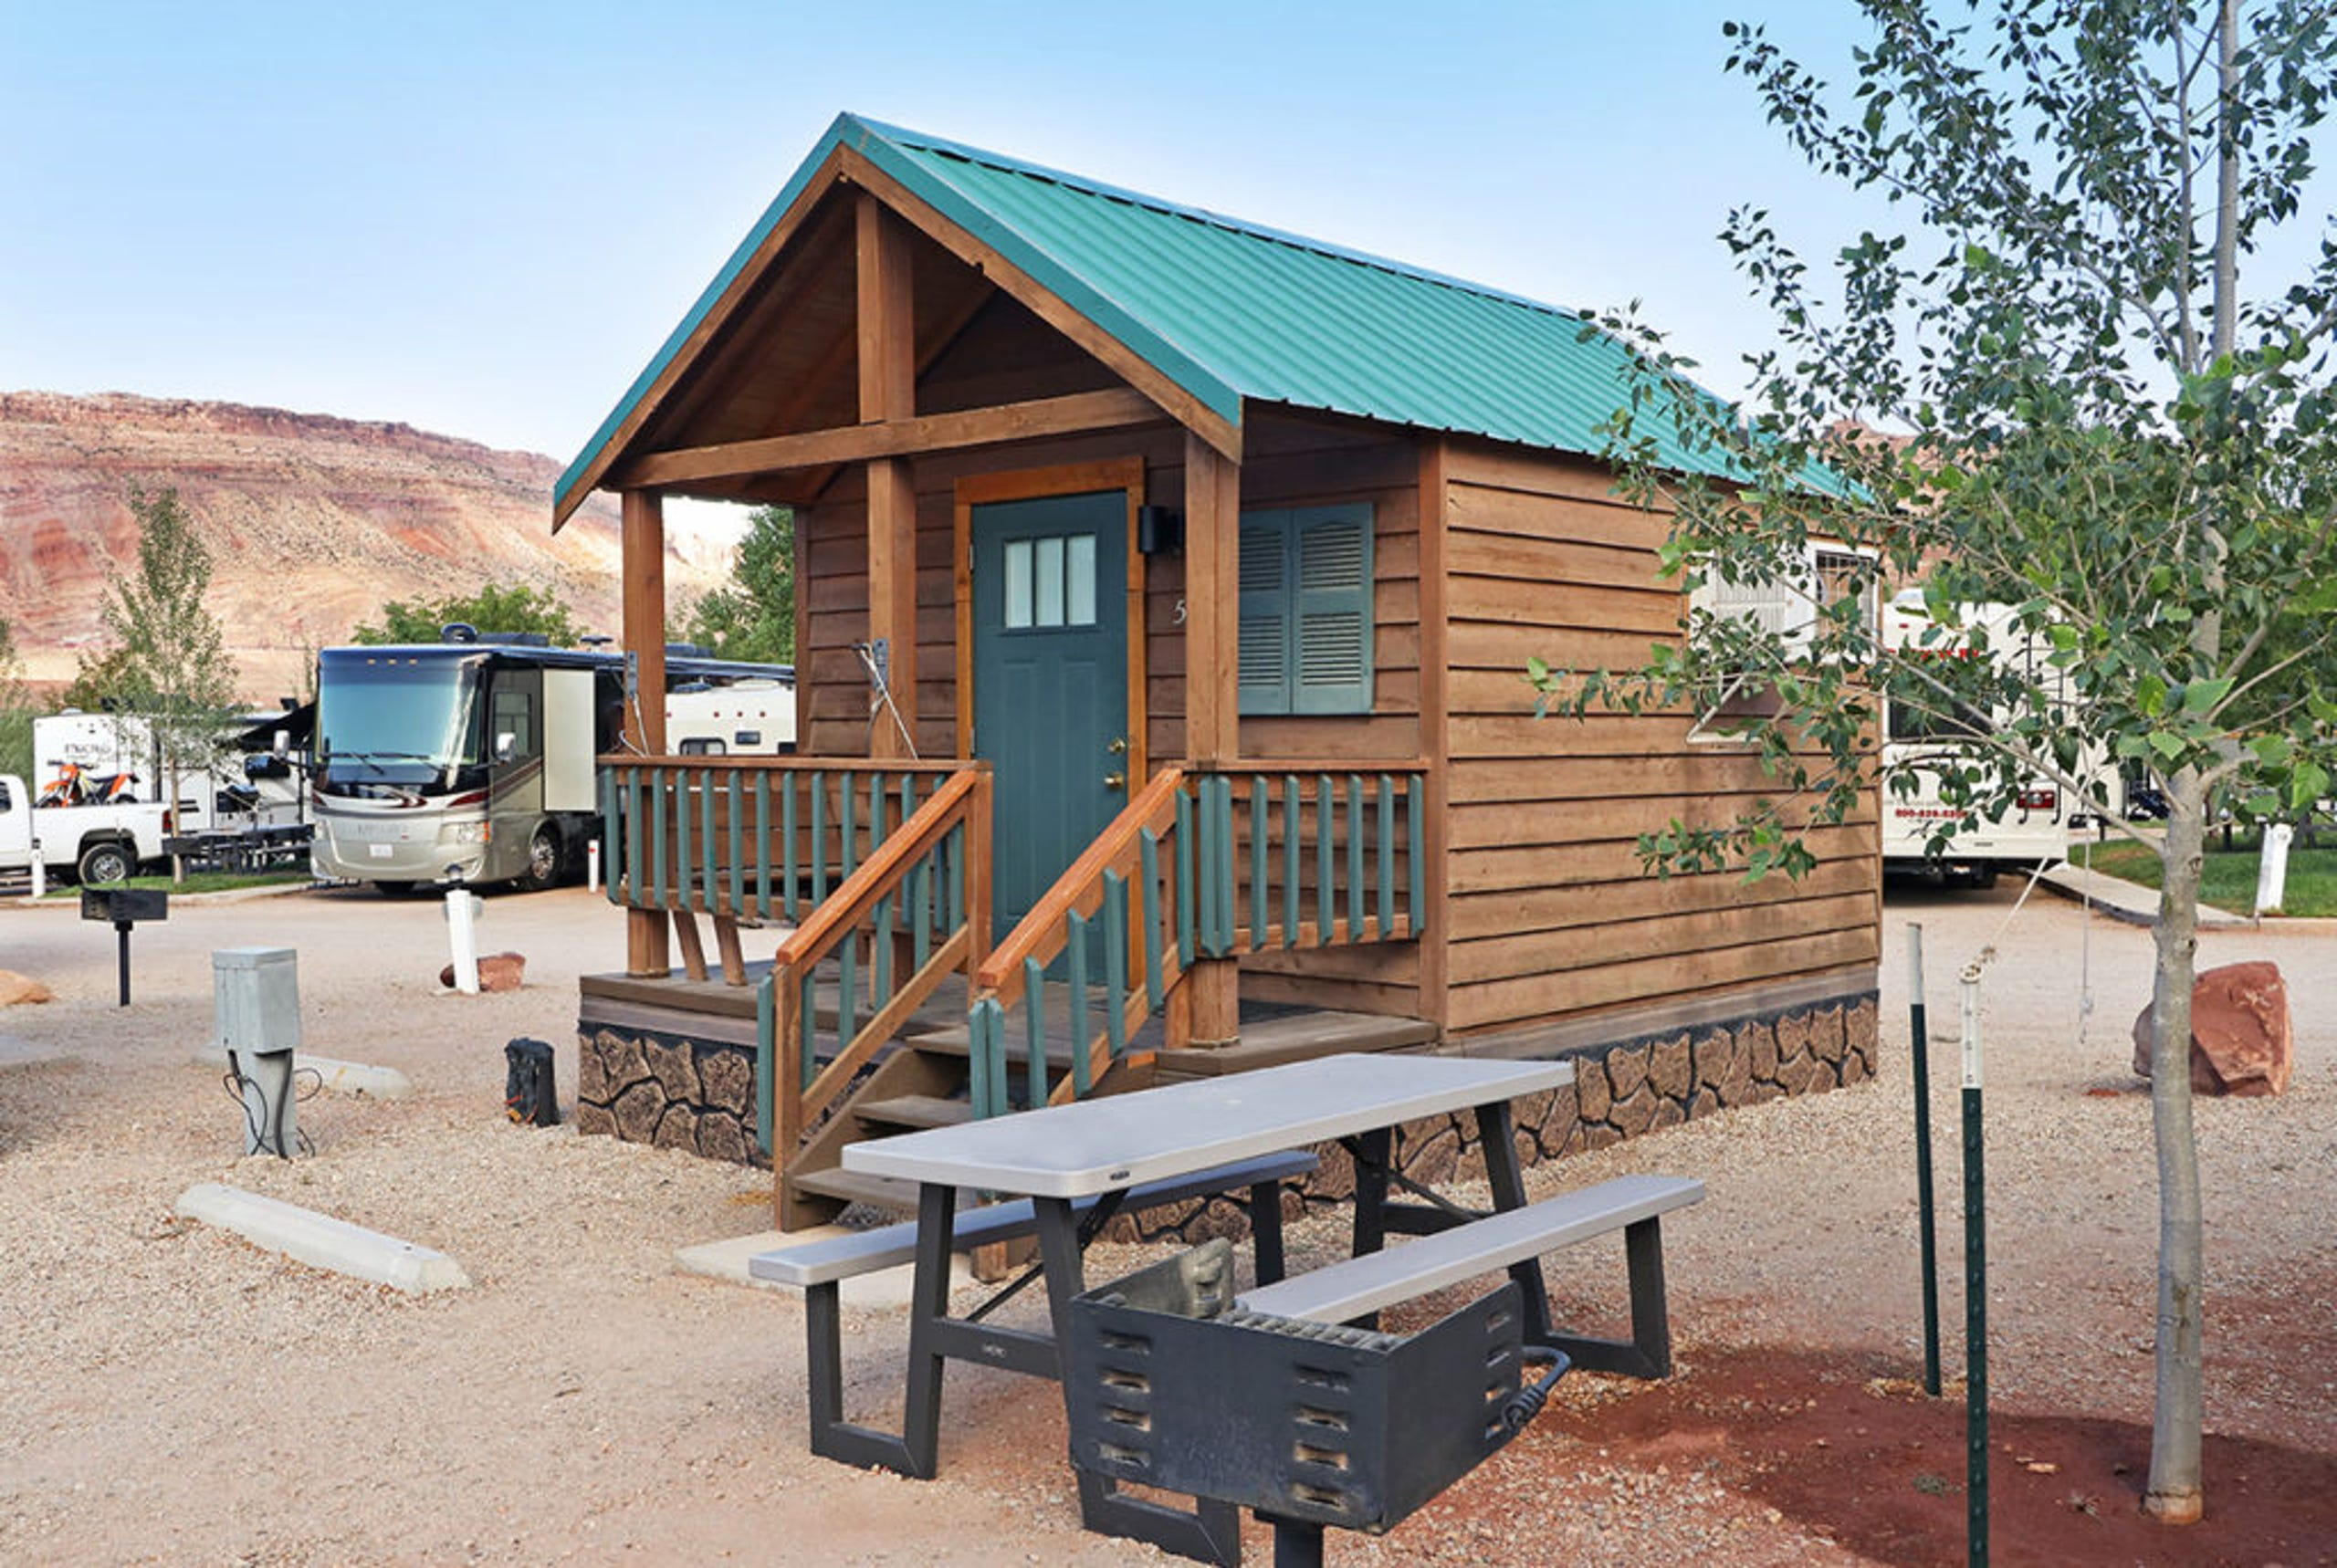 <strong>10. Moab Valley RV Resort &amp; Campground (Moab, Utah)</strong><br /> Lodgers can stay at one of the RV sites, tent sites, or vacation rentals, including a vintage Airstream trailer. It has 2,511&nbsp;advance reservations for 2021.&nbsp;<br /> &nbsp;